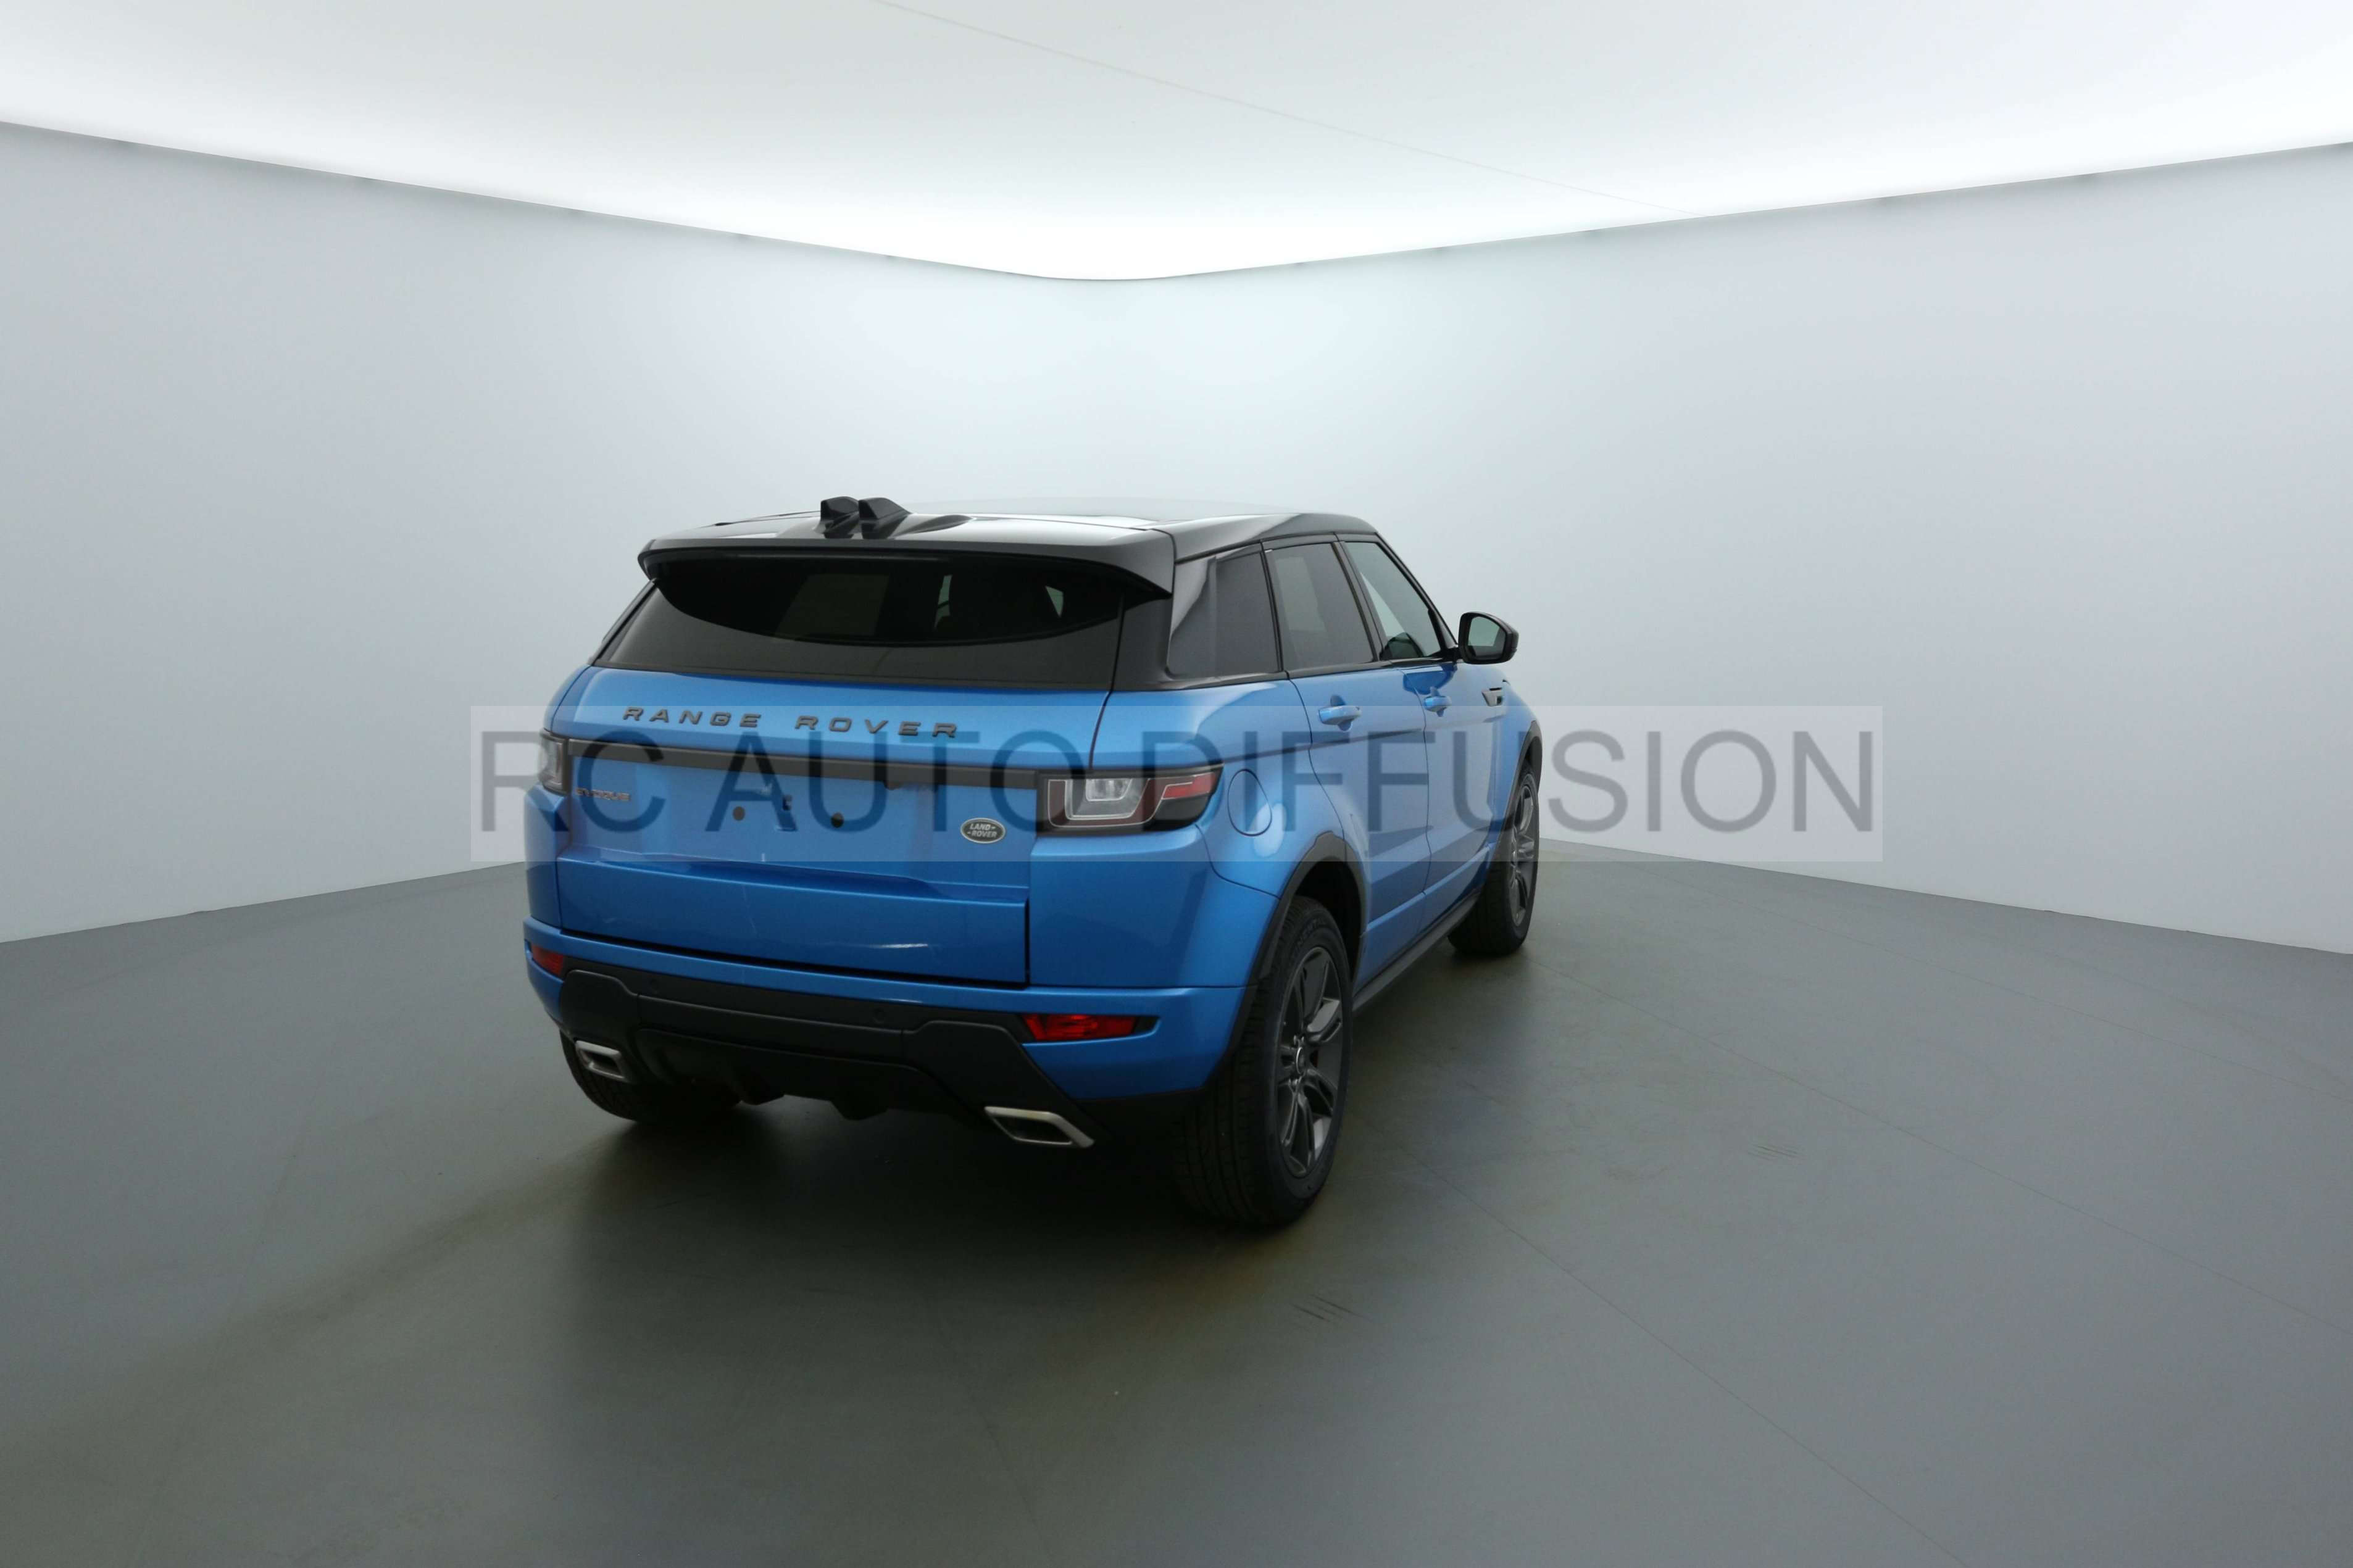 land rover range rover evoque echirolles 145513 rc auto diffusion. Black Bedroom Furniture Sets. Home Design Ideas